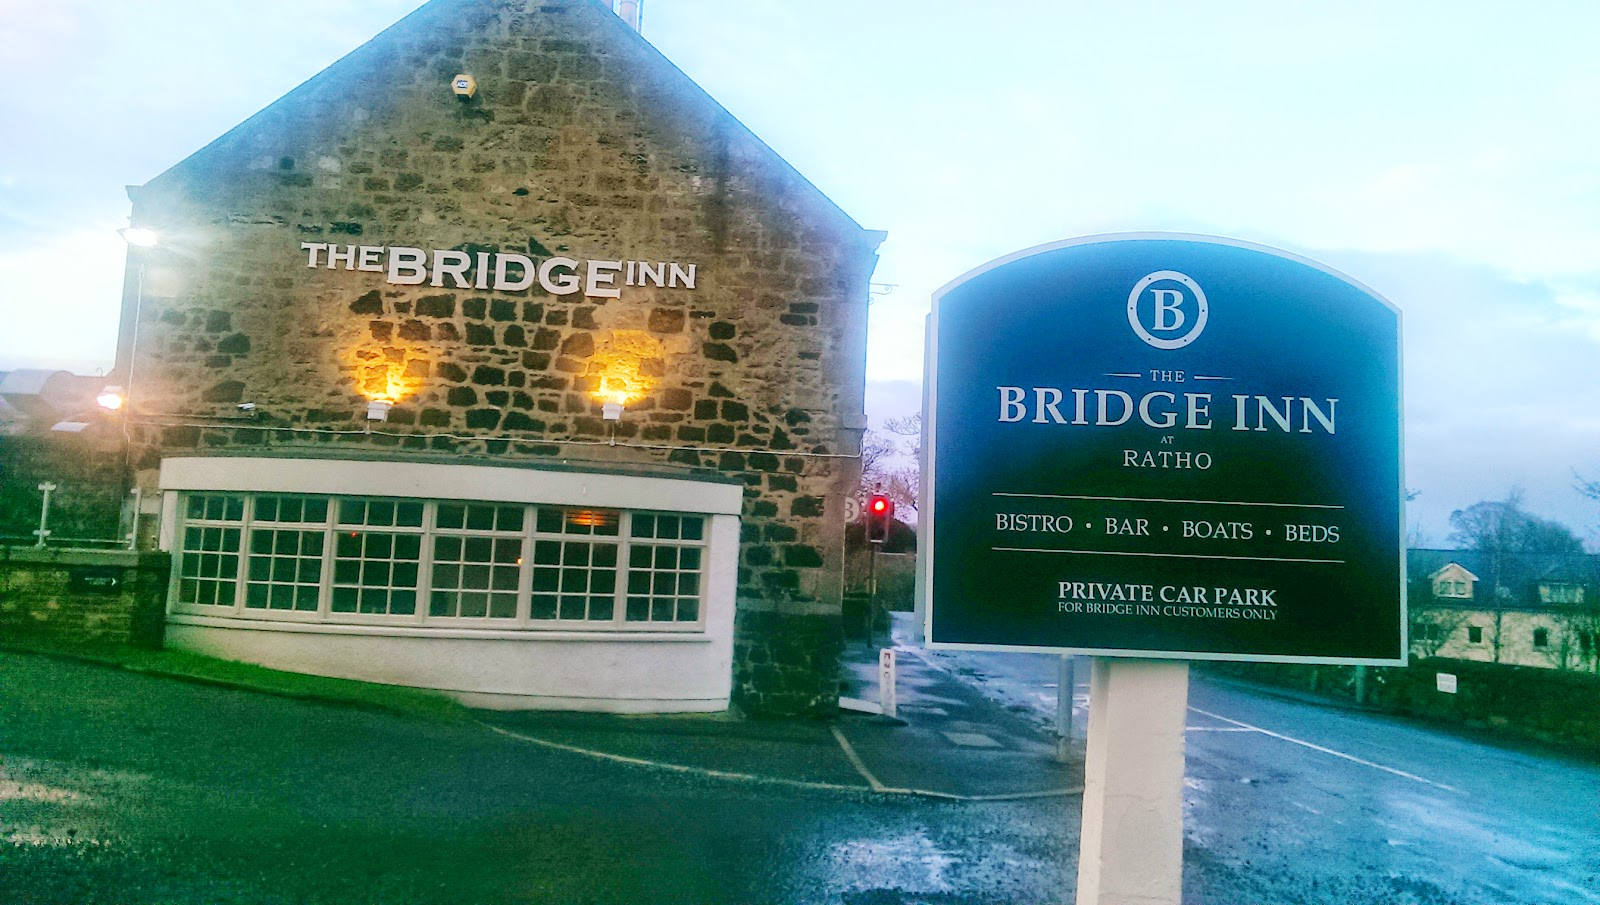 Bridge Inn Ratho